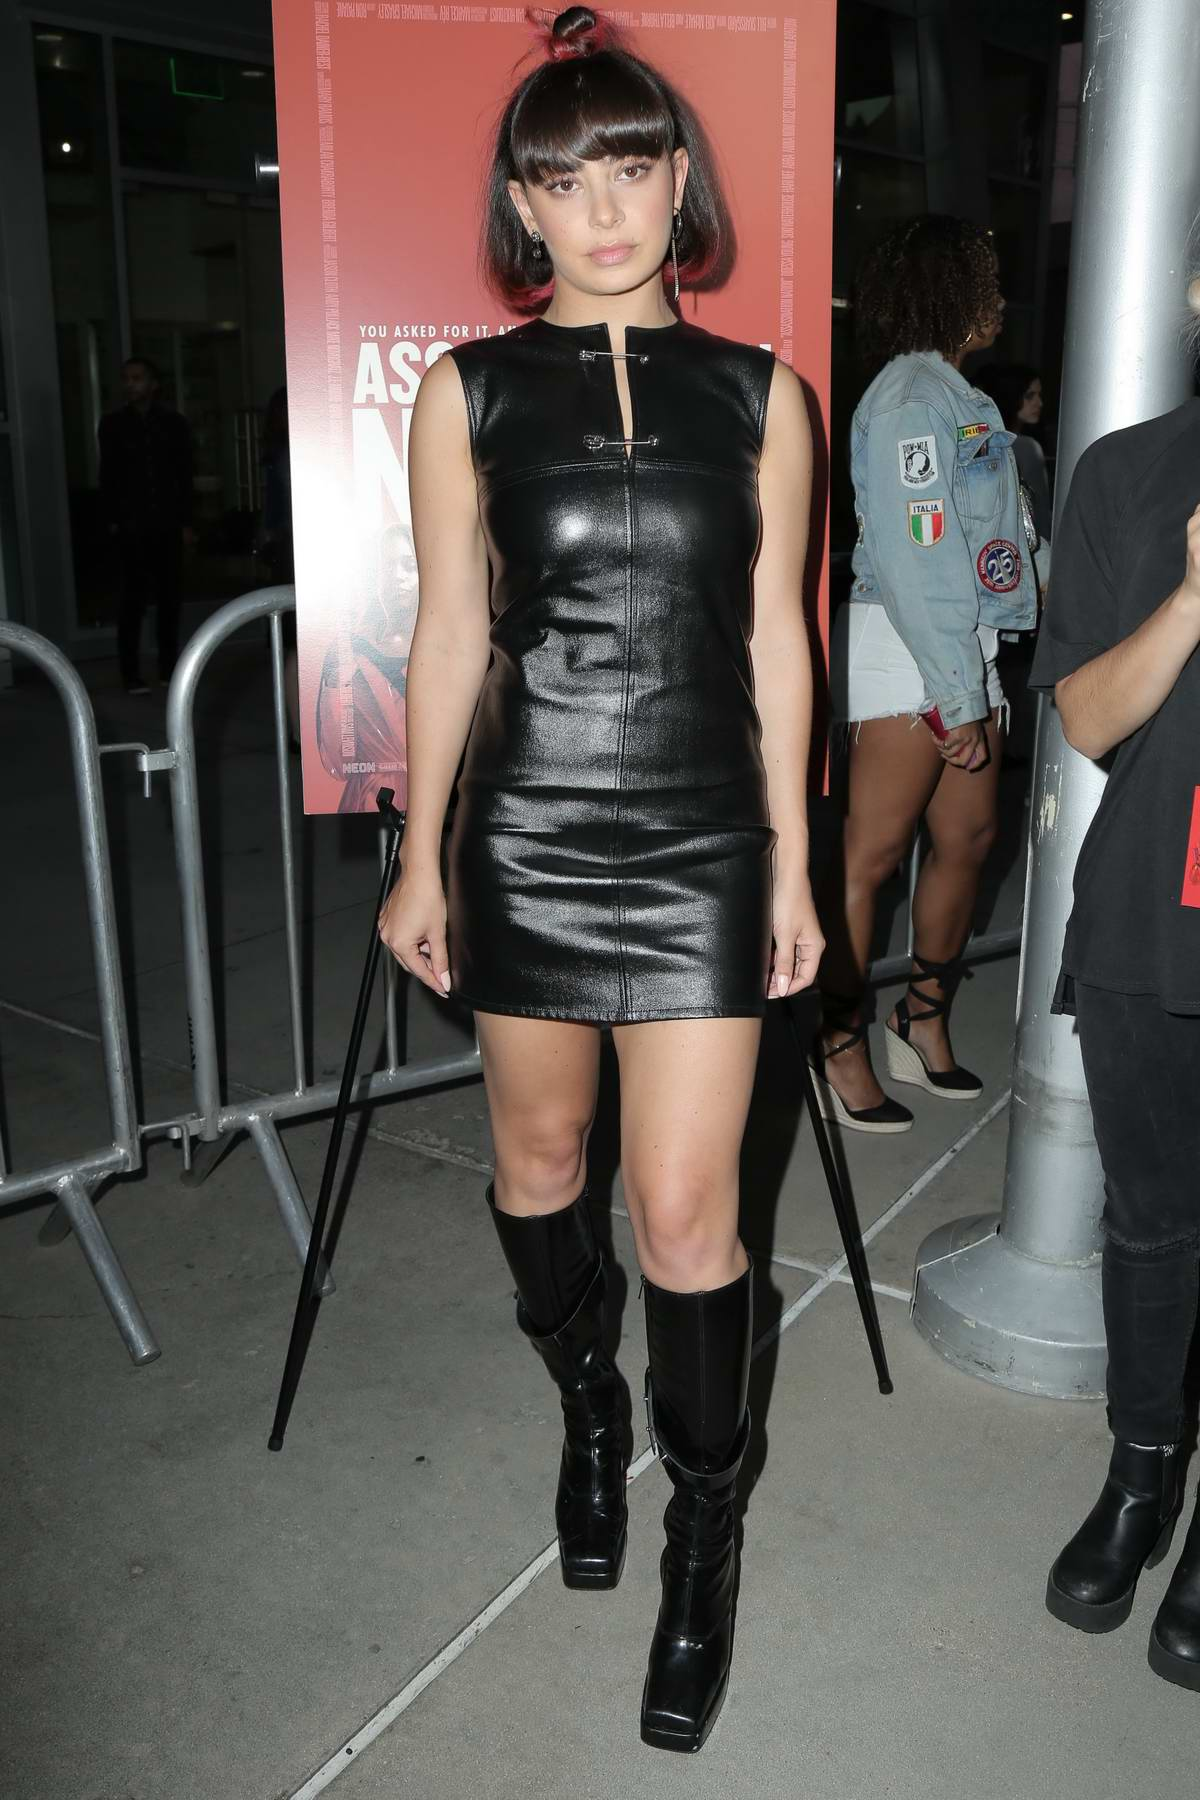 Charli XCX attends 'Assassination Nation' film premiere at ArcLight Hollywood in Hollywood, Los Angeles